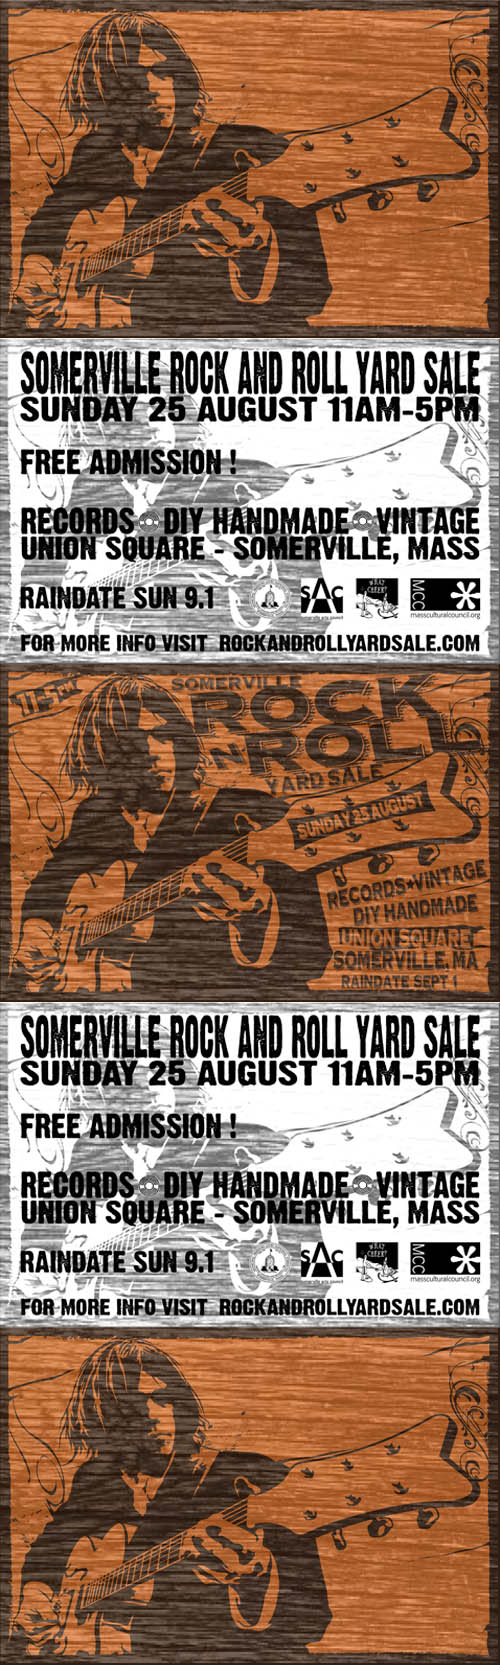 Somerville Rock And Roll Yard Sale 2013 Neil Young Poster